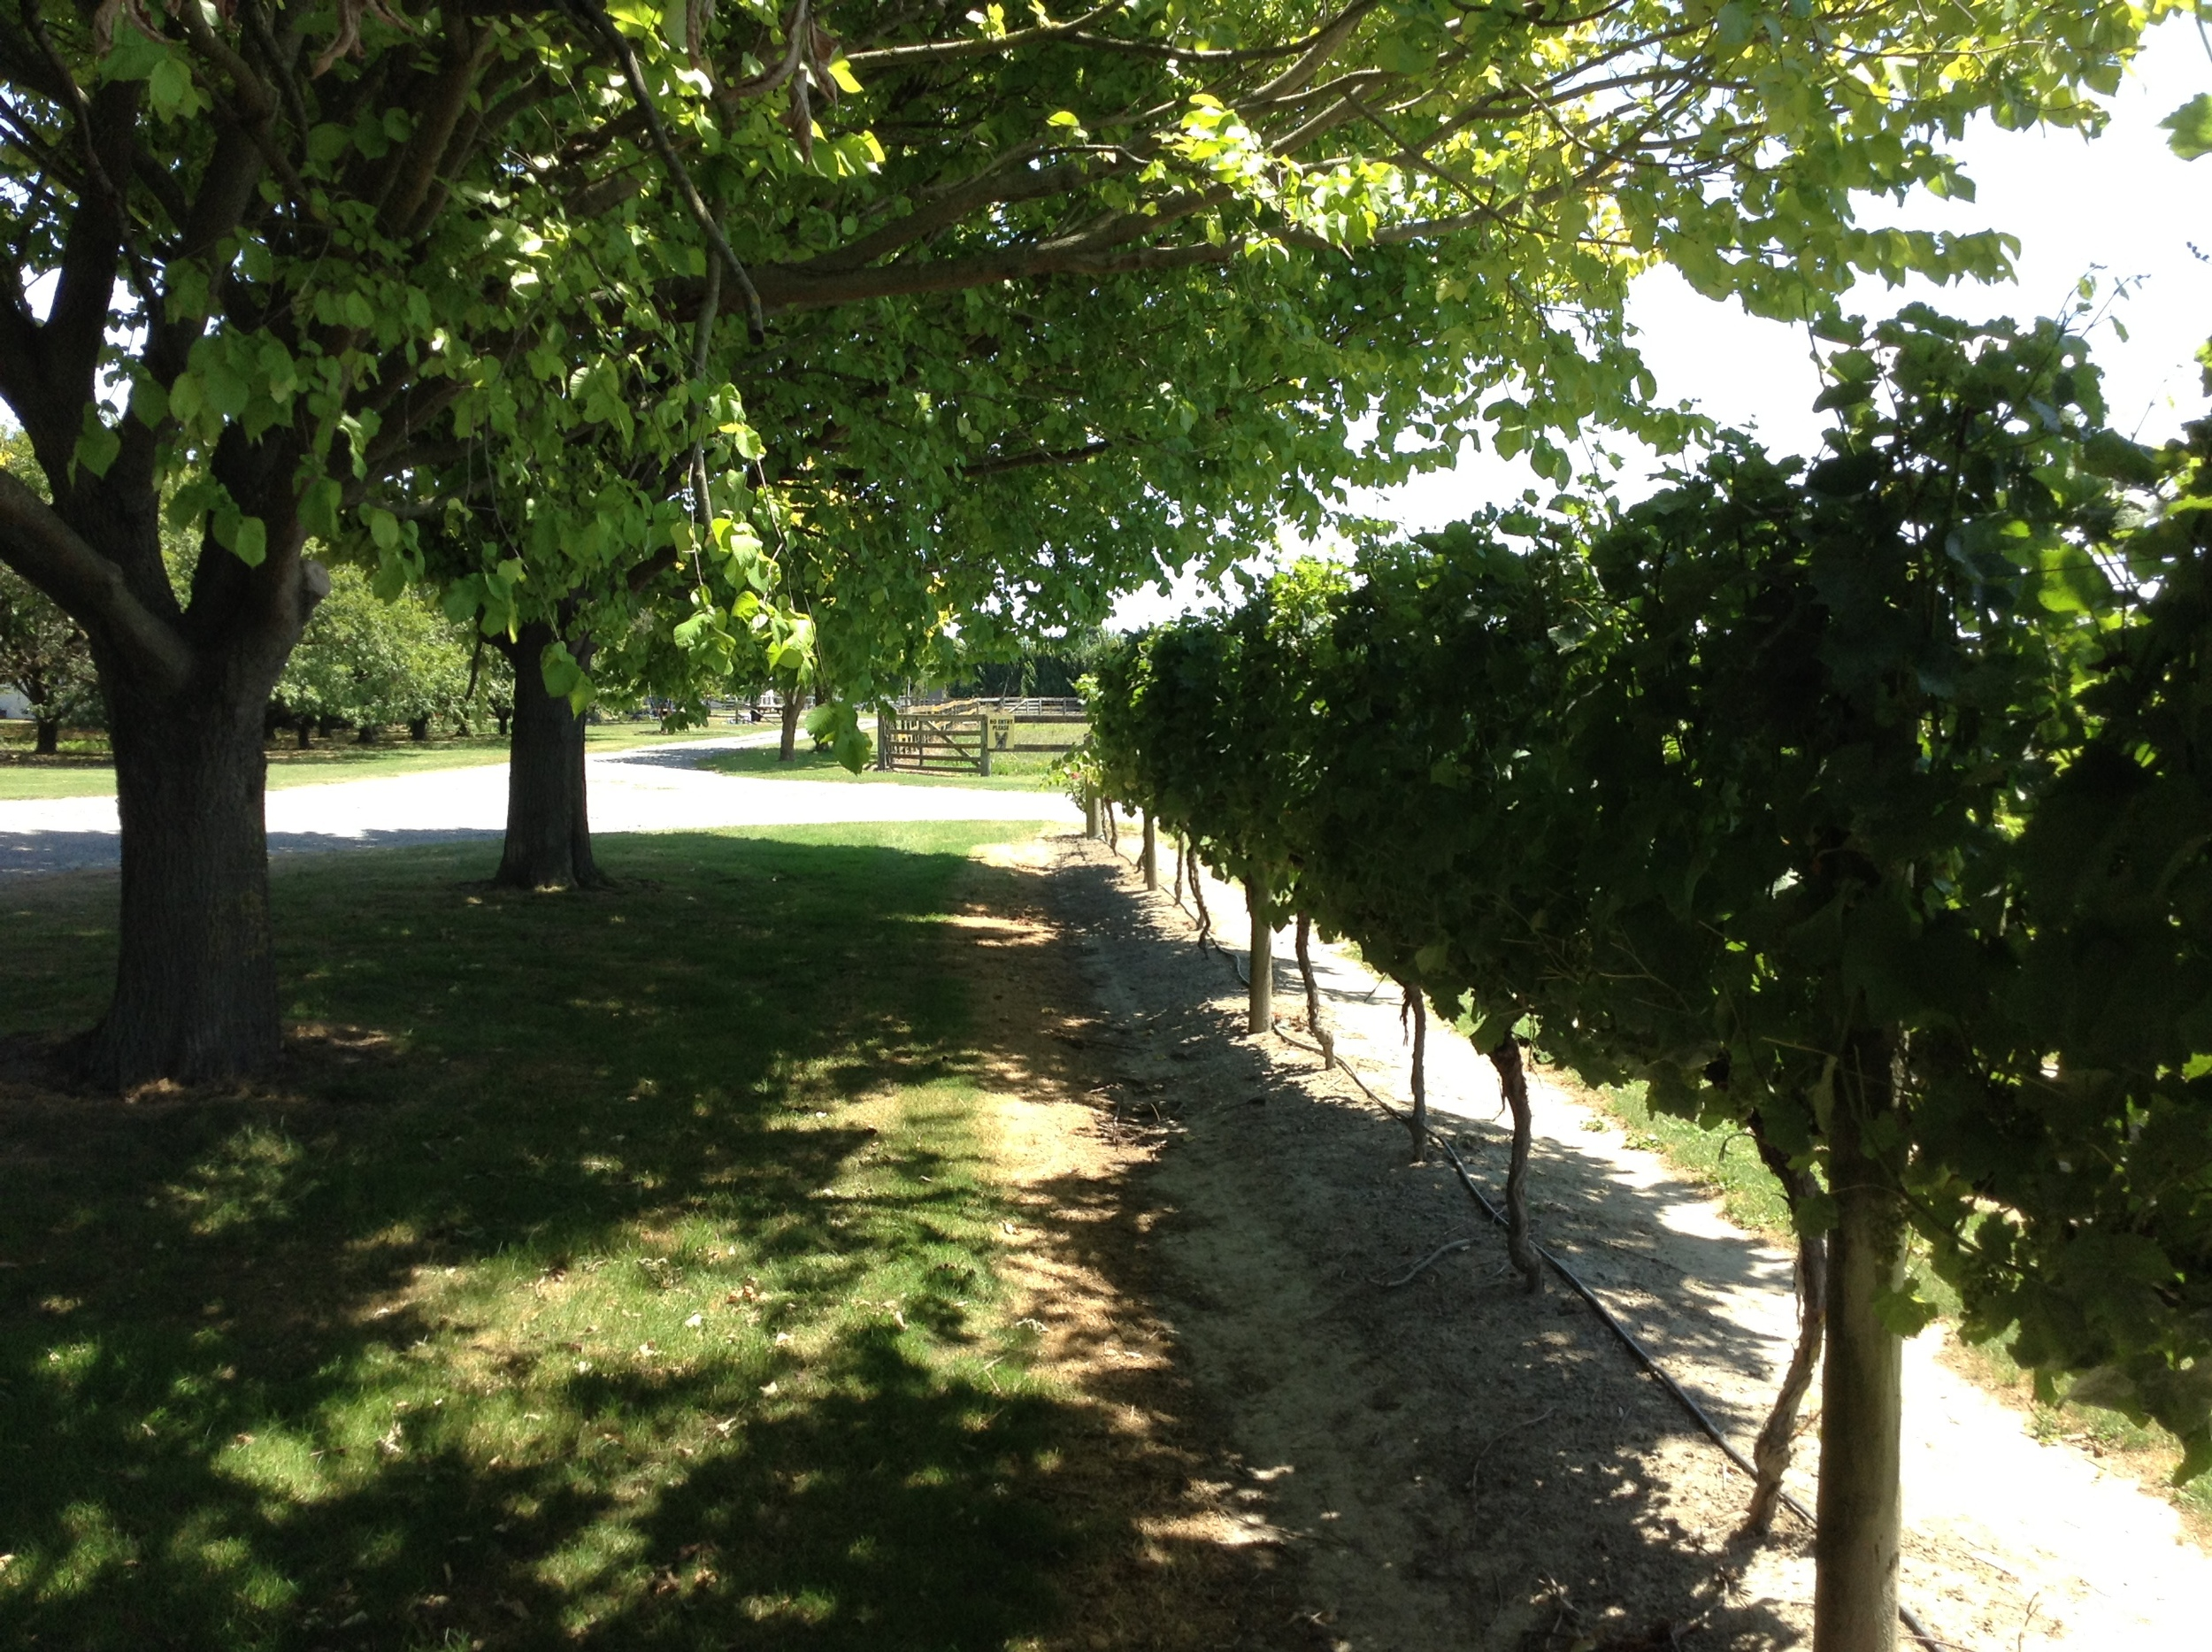 The leafy Chardonnay vines at the home vineyard.